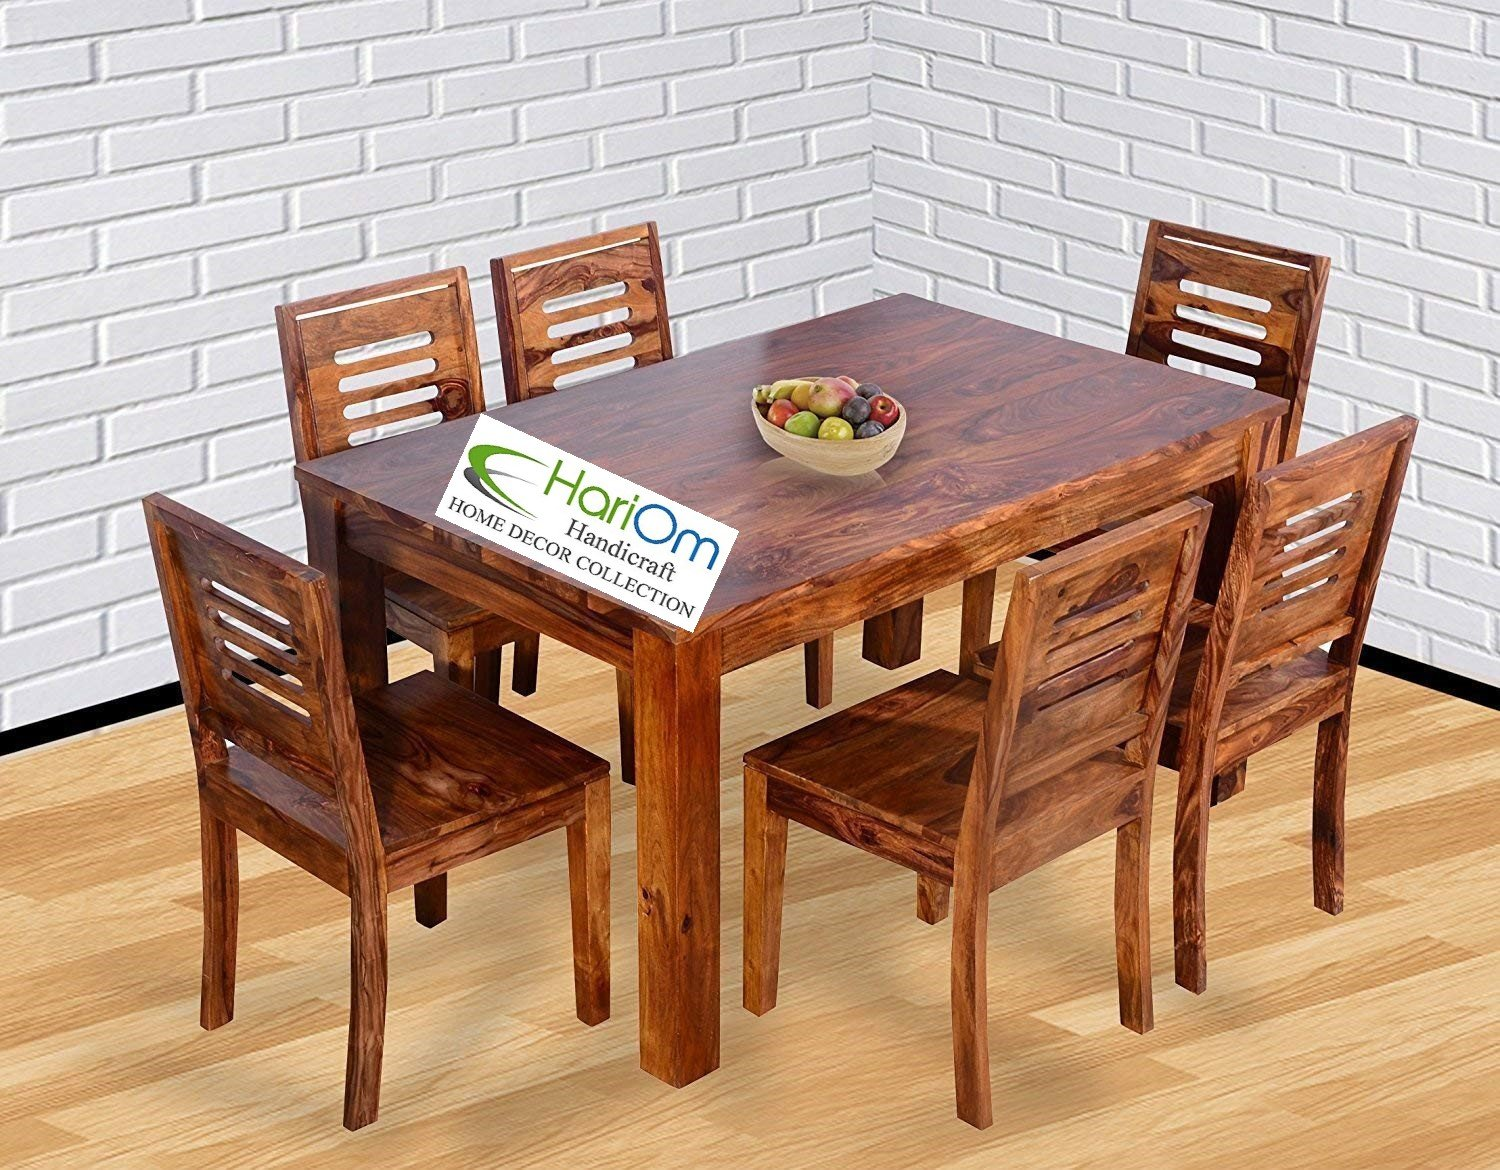 Hariom Handicraft Sheesham Wood Wooden Dining Set 6 Seater Table With Chairs Natural Teak Finish Amazonin Home Kitchen